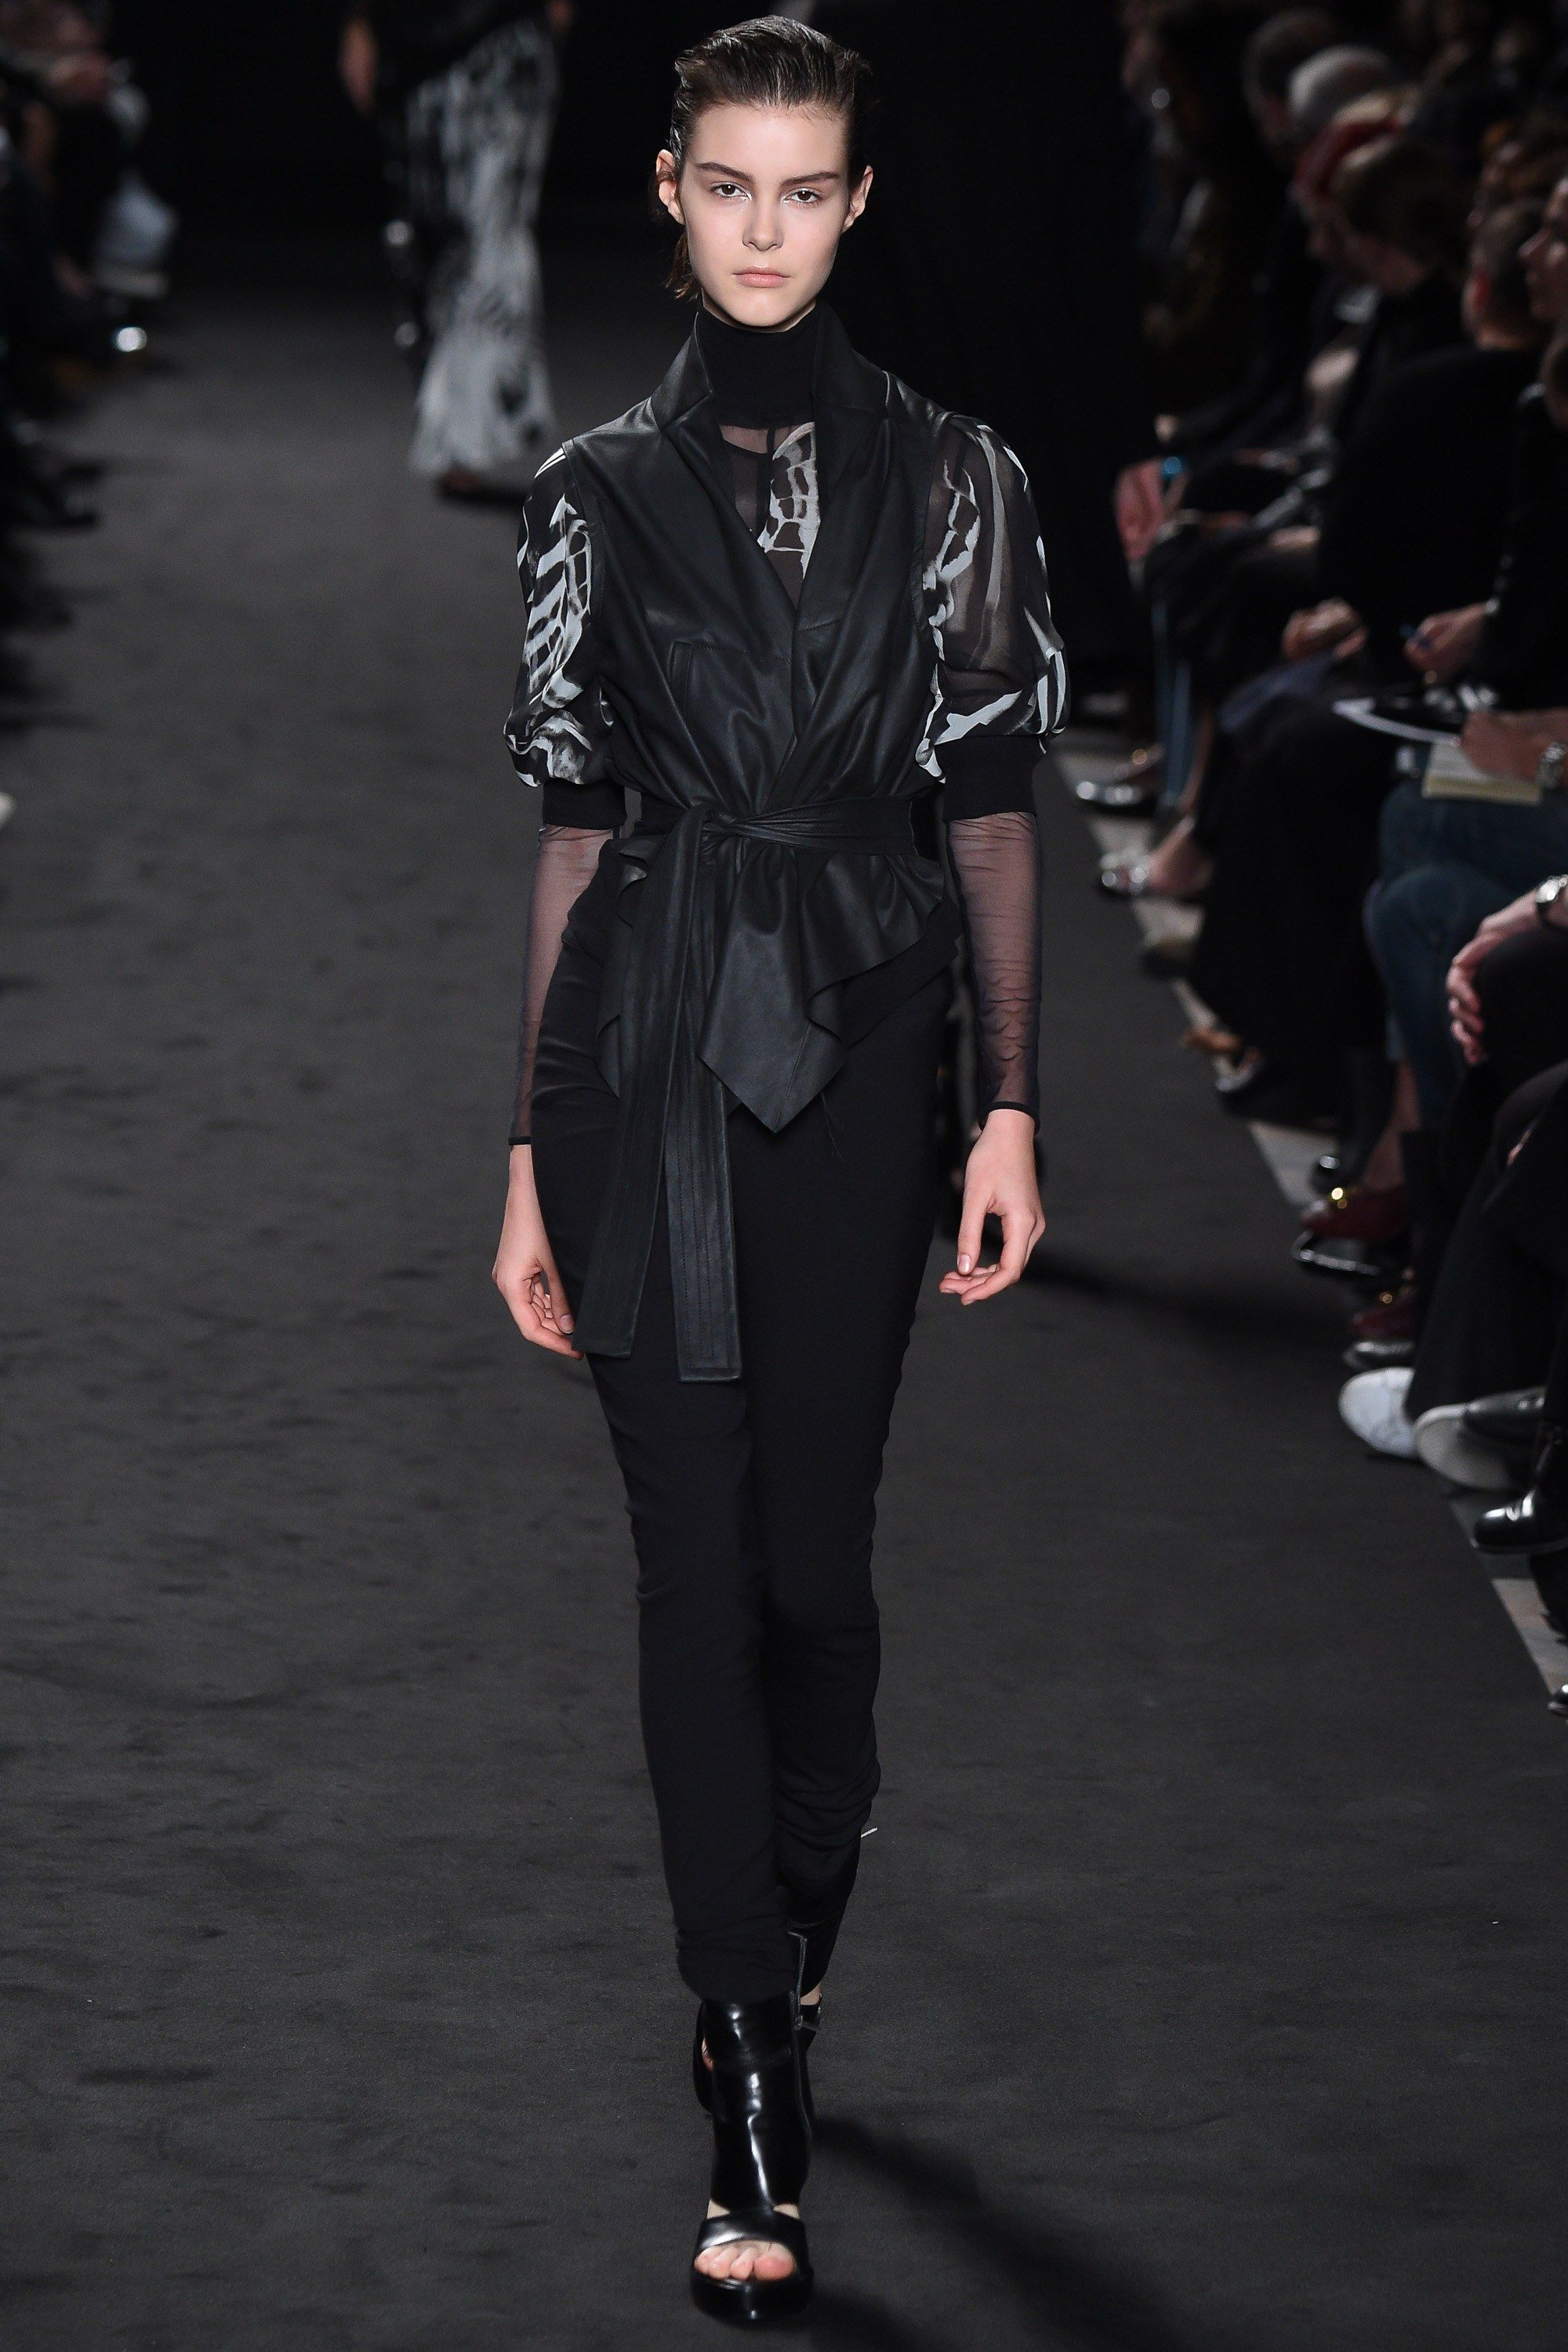 See the complete Ann Demeulemeester Spring 2016 Ready-to-Wear collection.